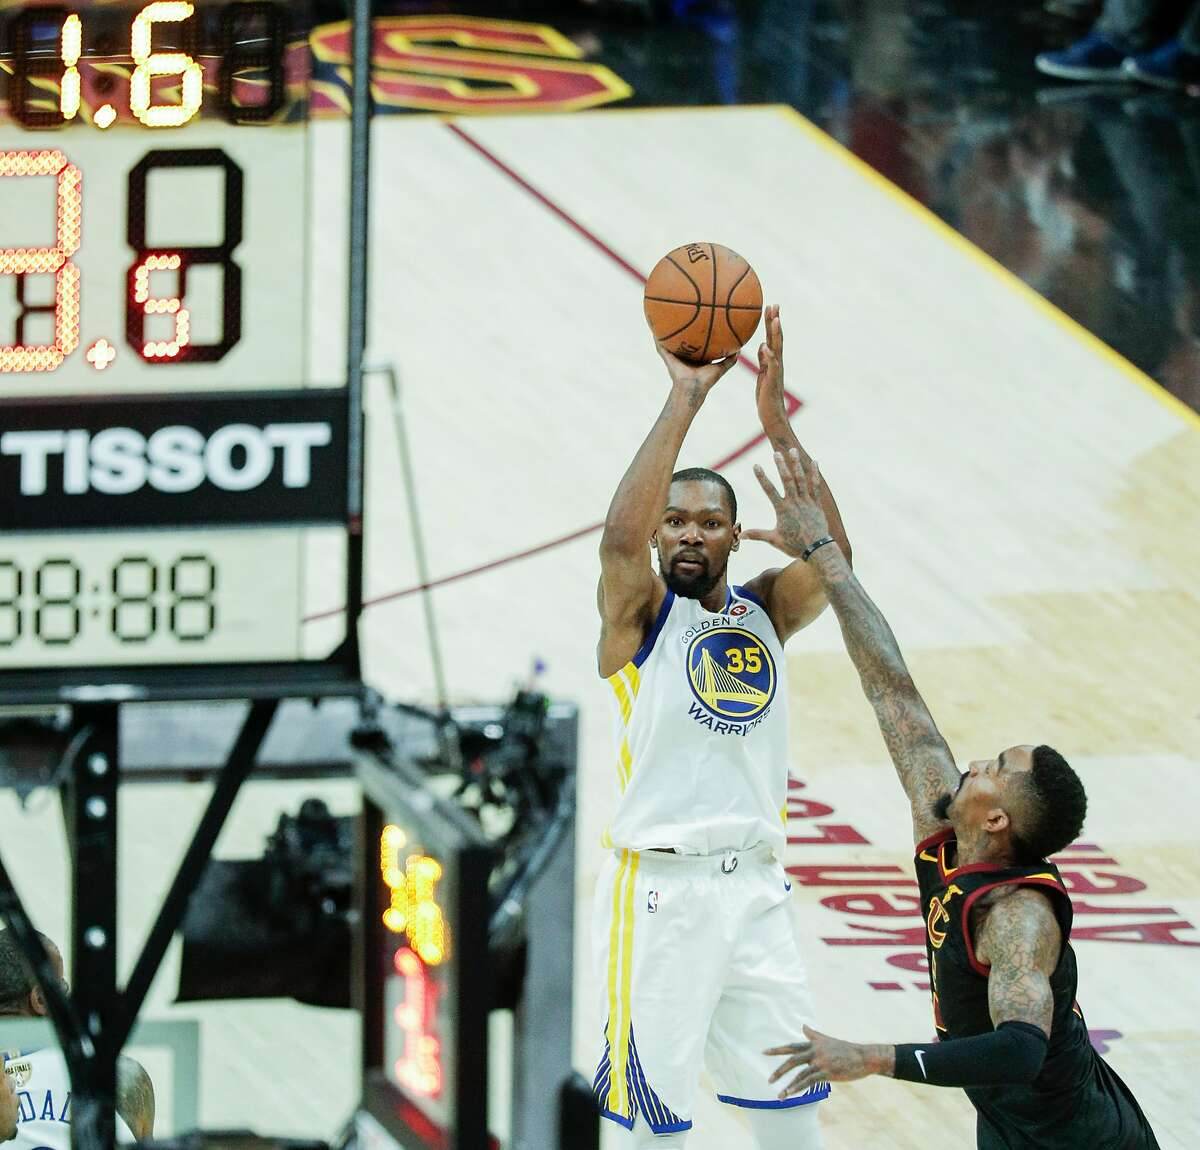 Golden State Warriors' Kevin Durant shoots a three-pointer over Cleveland Cavaliers' JR Smith in the fourth quarter during game 3 of The NBA Finals between the Golden State Warriors and the Cleveland Cavaliers at Oracle Arena on Wednesday, June 6, 2018 in Cleveland, Ohio.